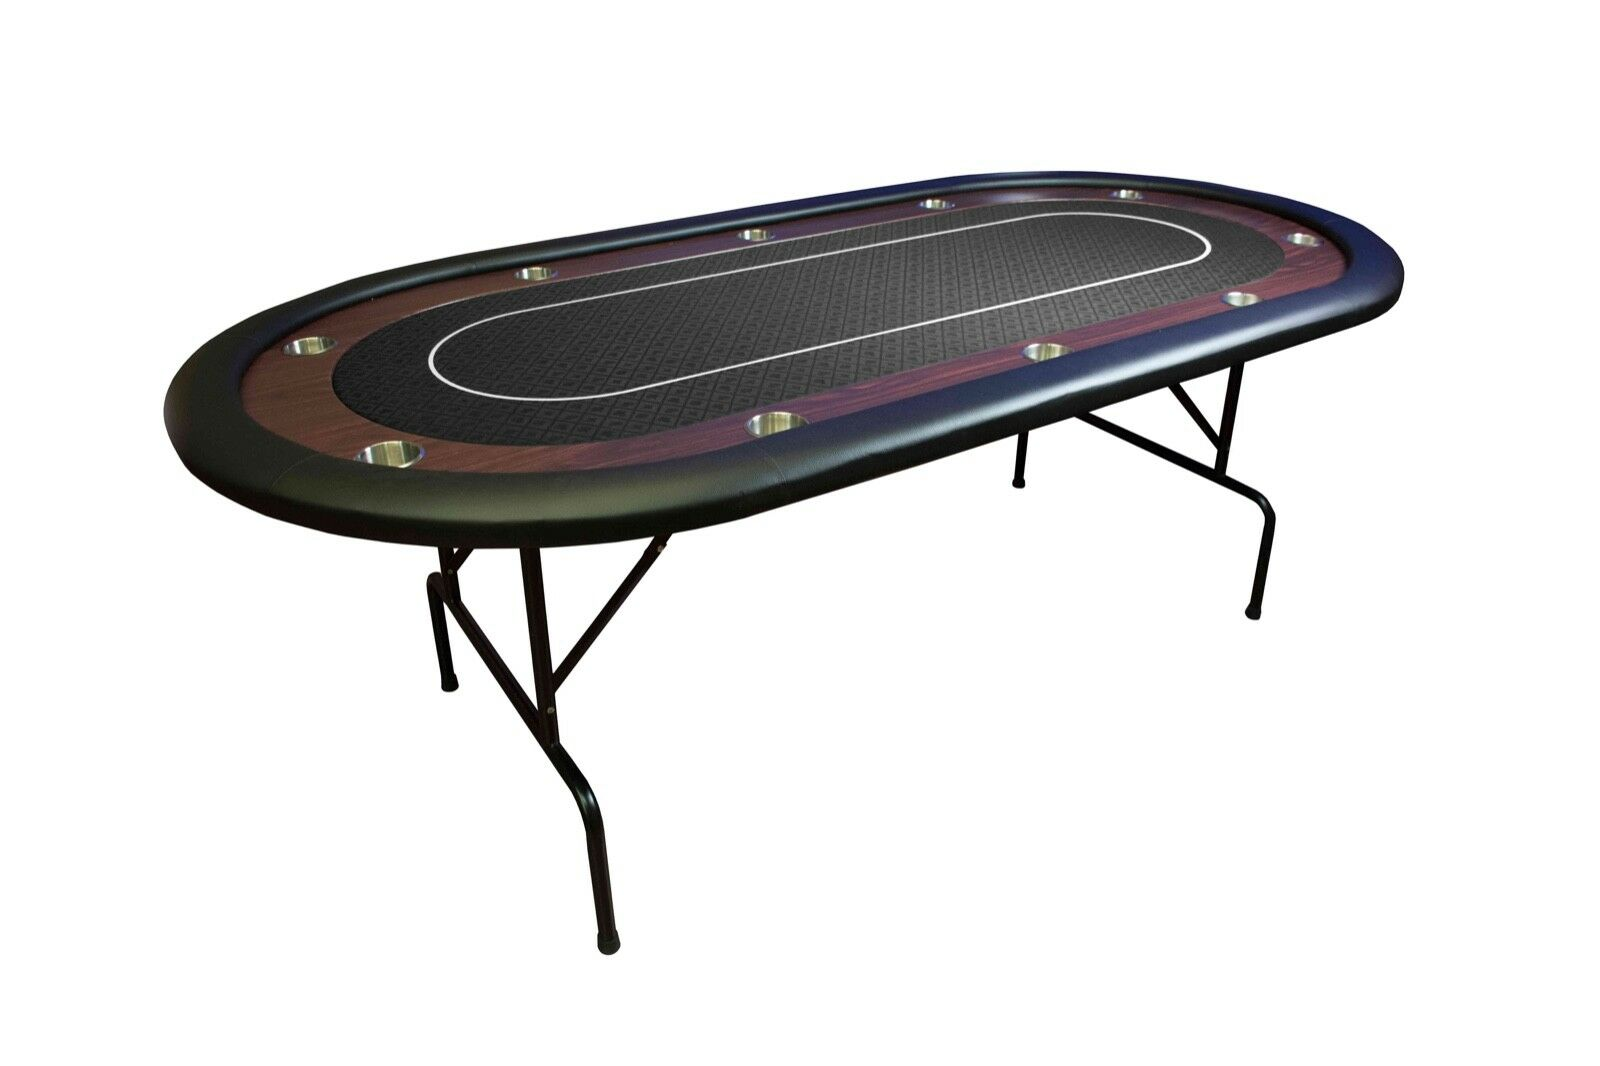 Mesa Tablero Poker Table 84″ Torneo Plegable Negro